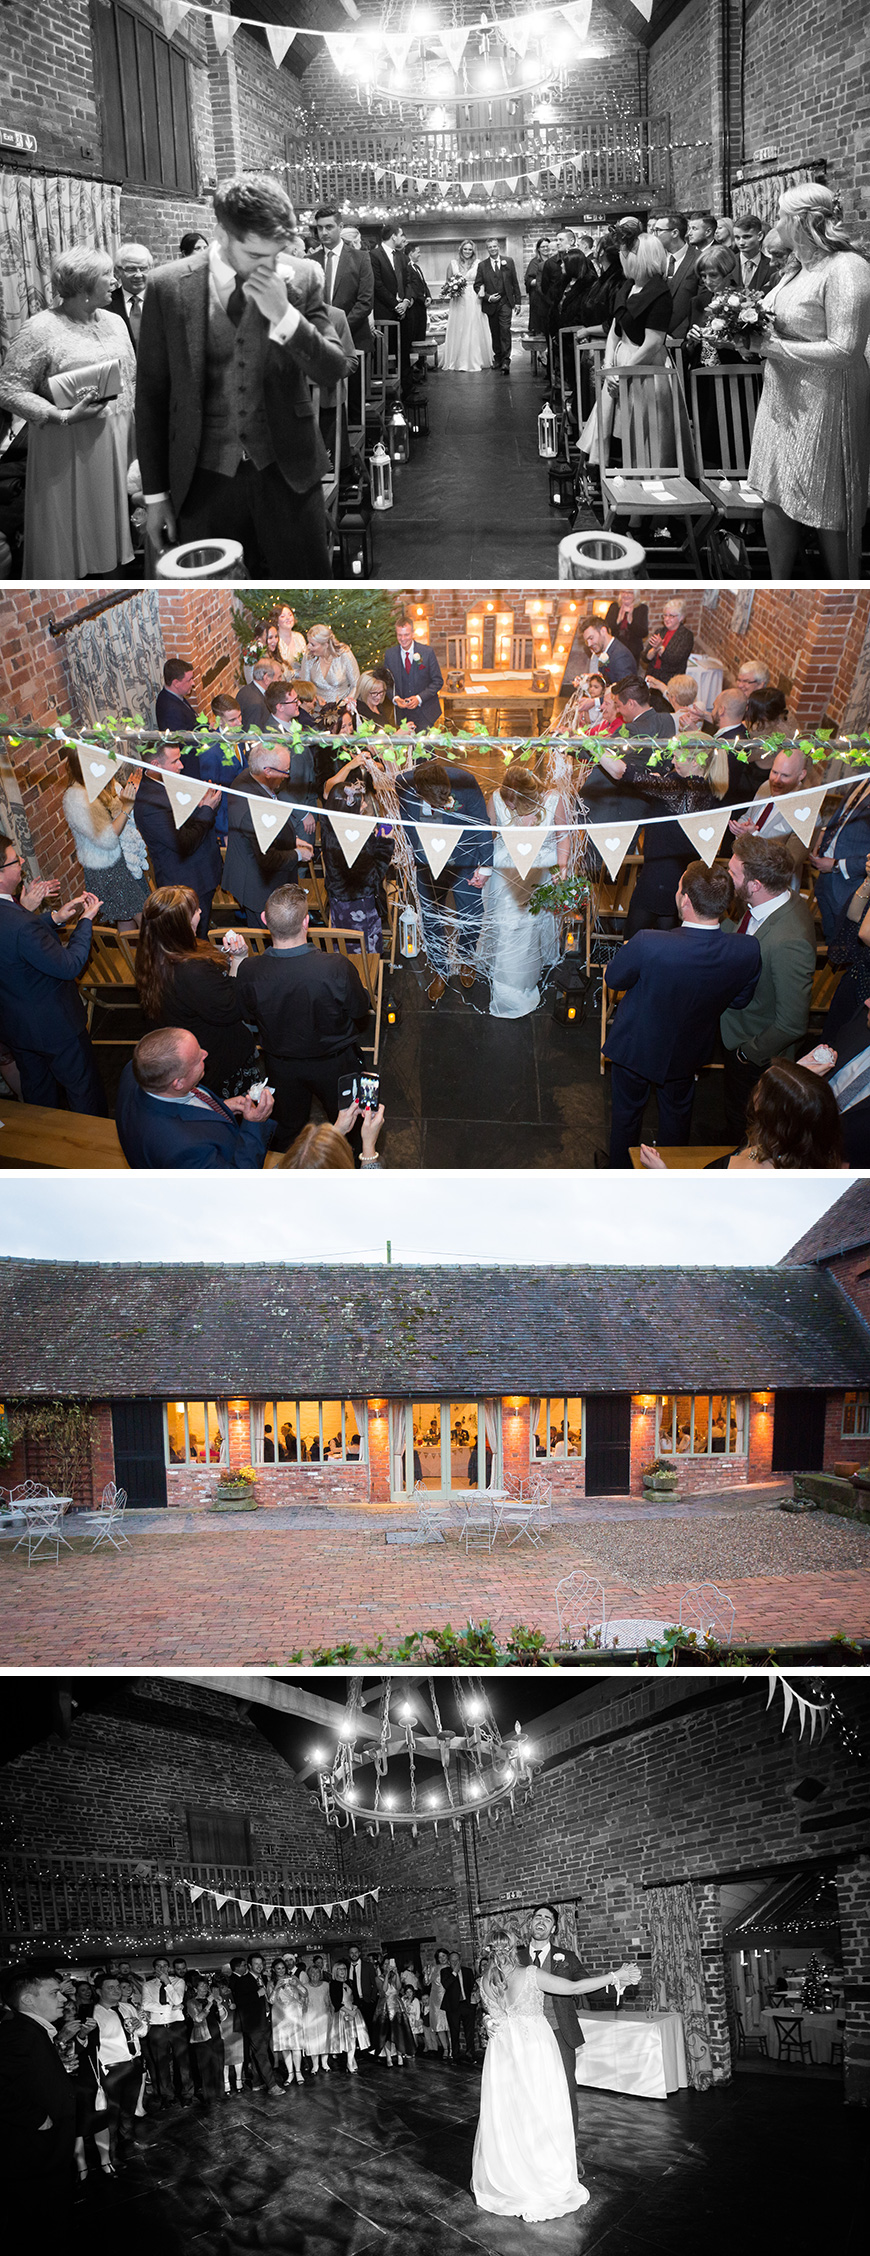 Real Wedding - Michelle and James's Romantic Christmas Wedding at Curradine Barns | CHWV